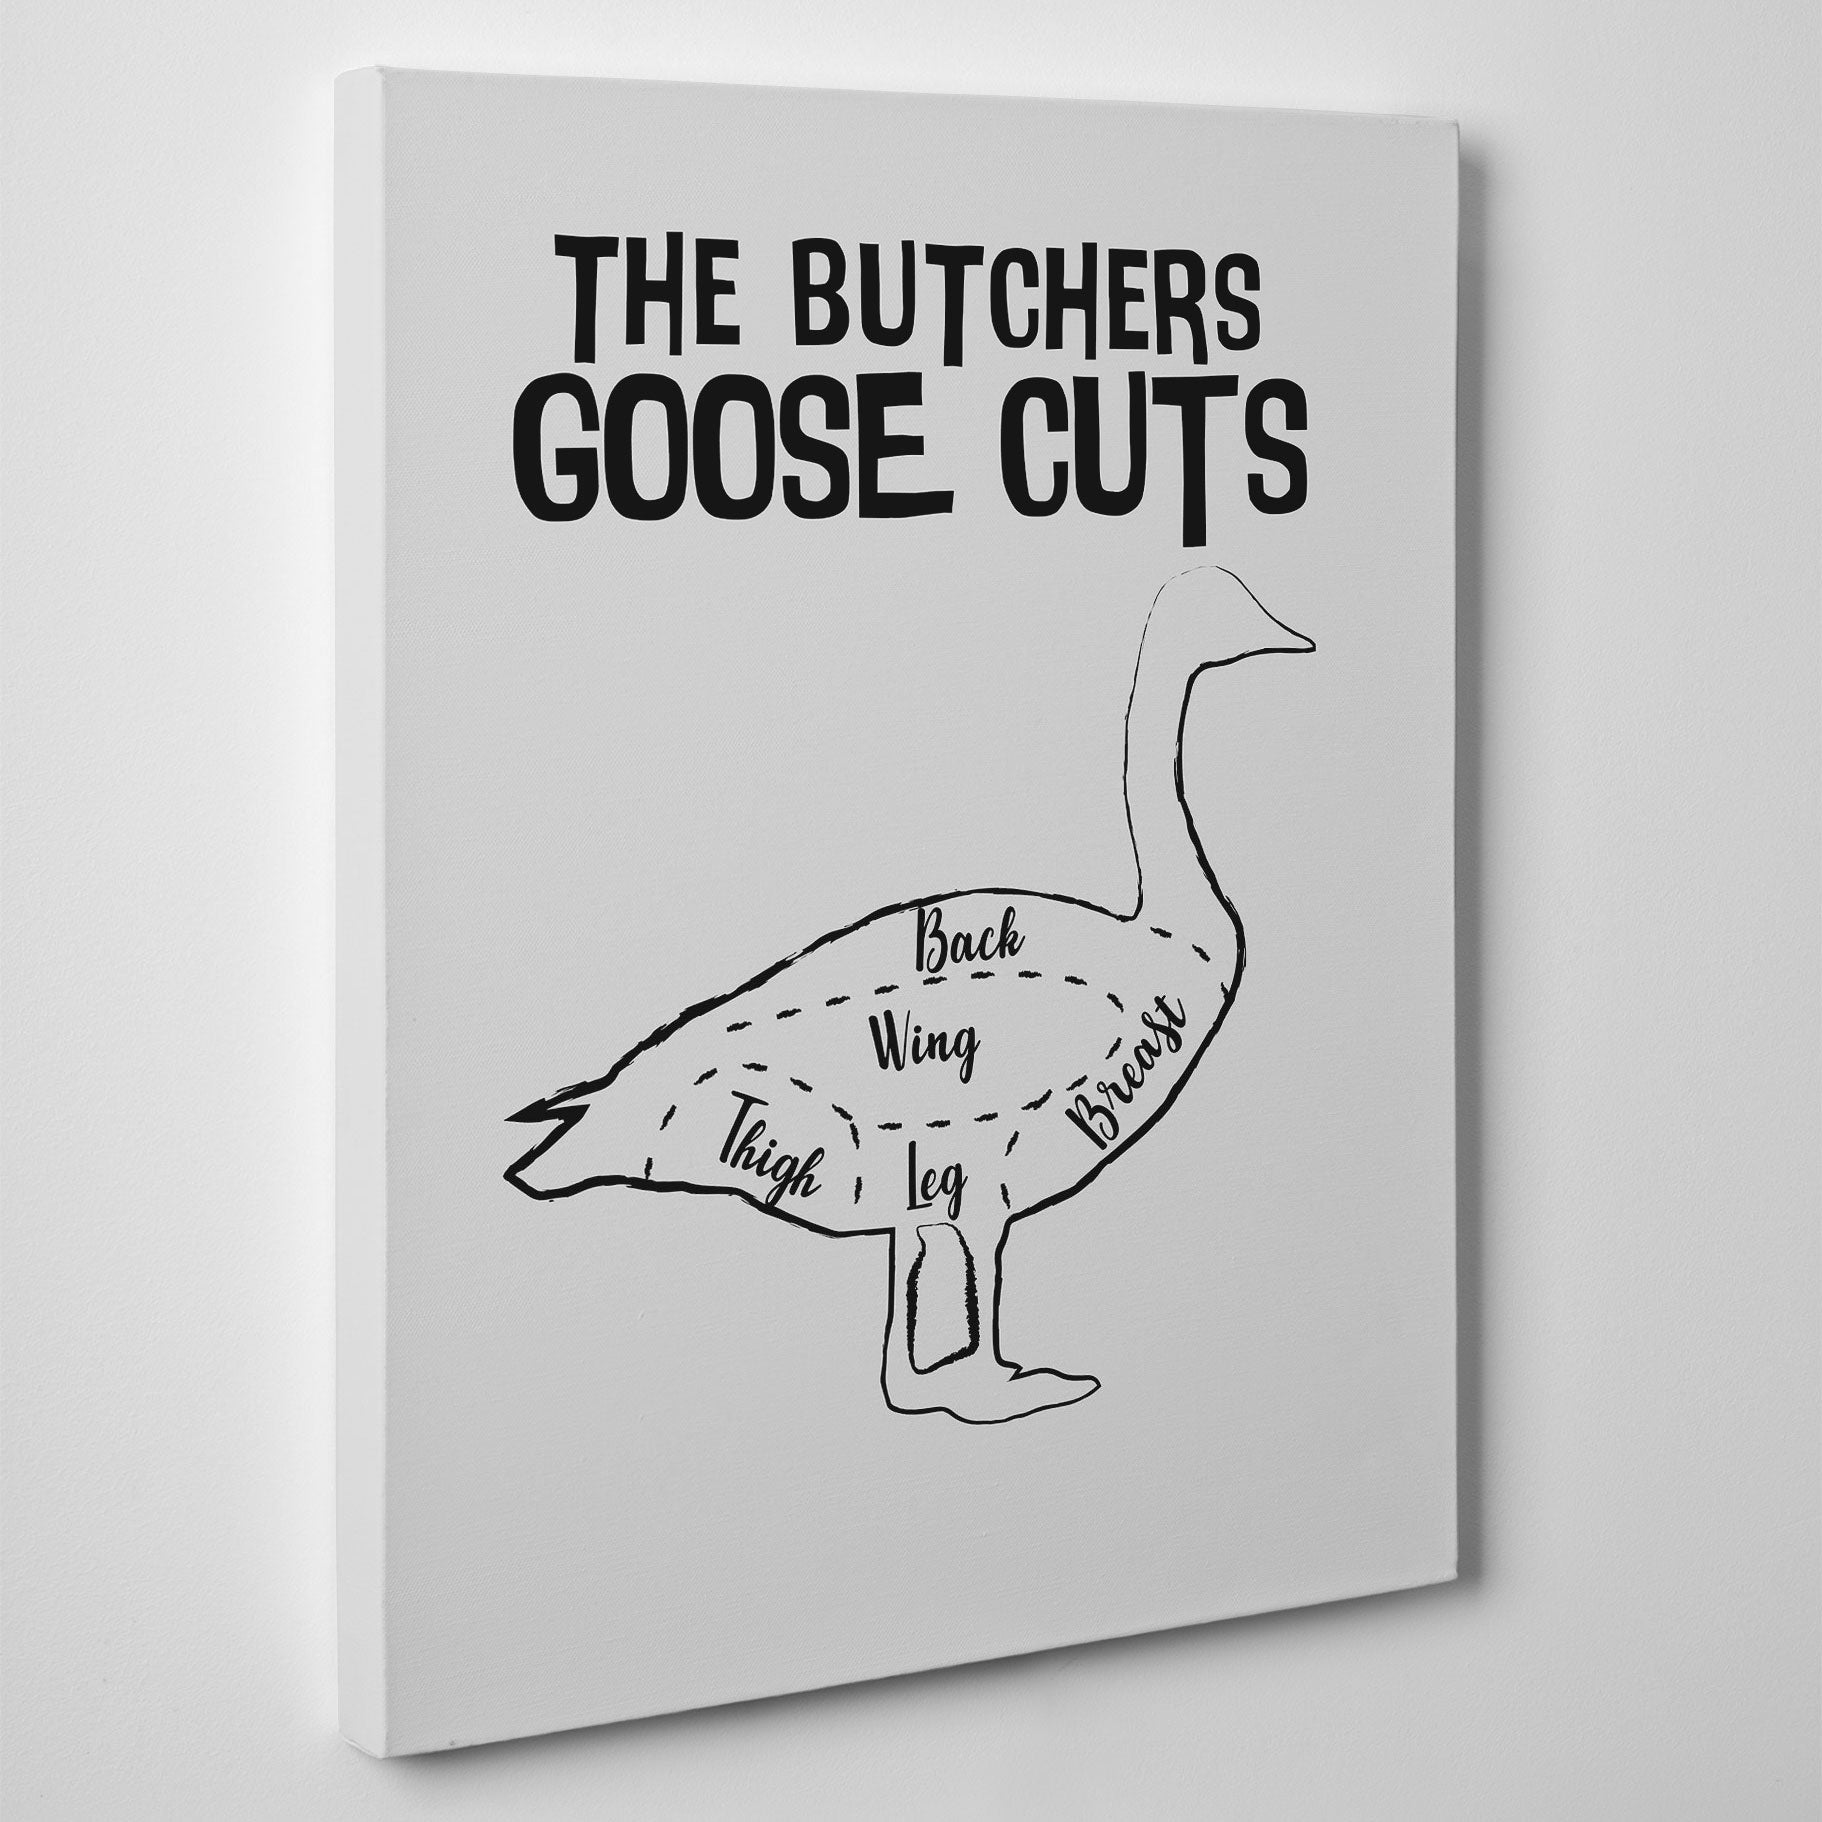 Kitchen canvas print with butcher's goose cuts text and image, on a grey background - side view